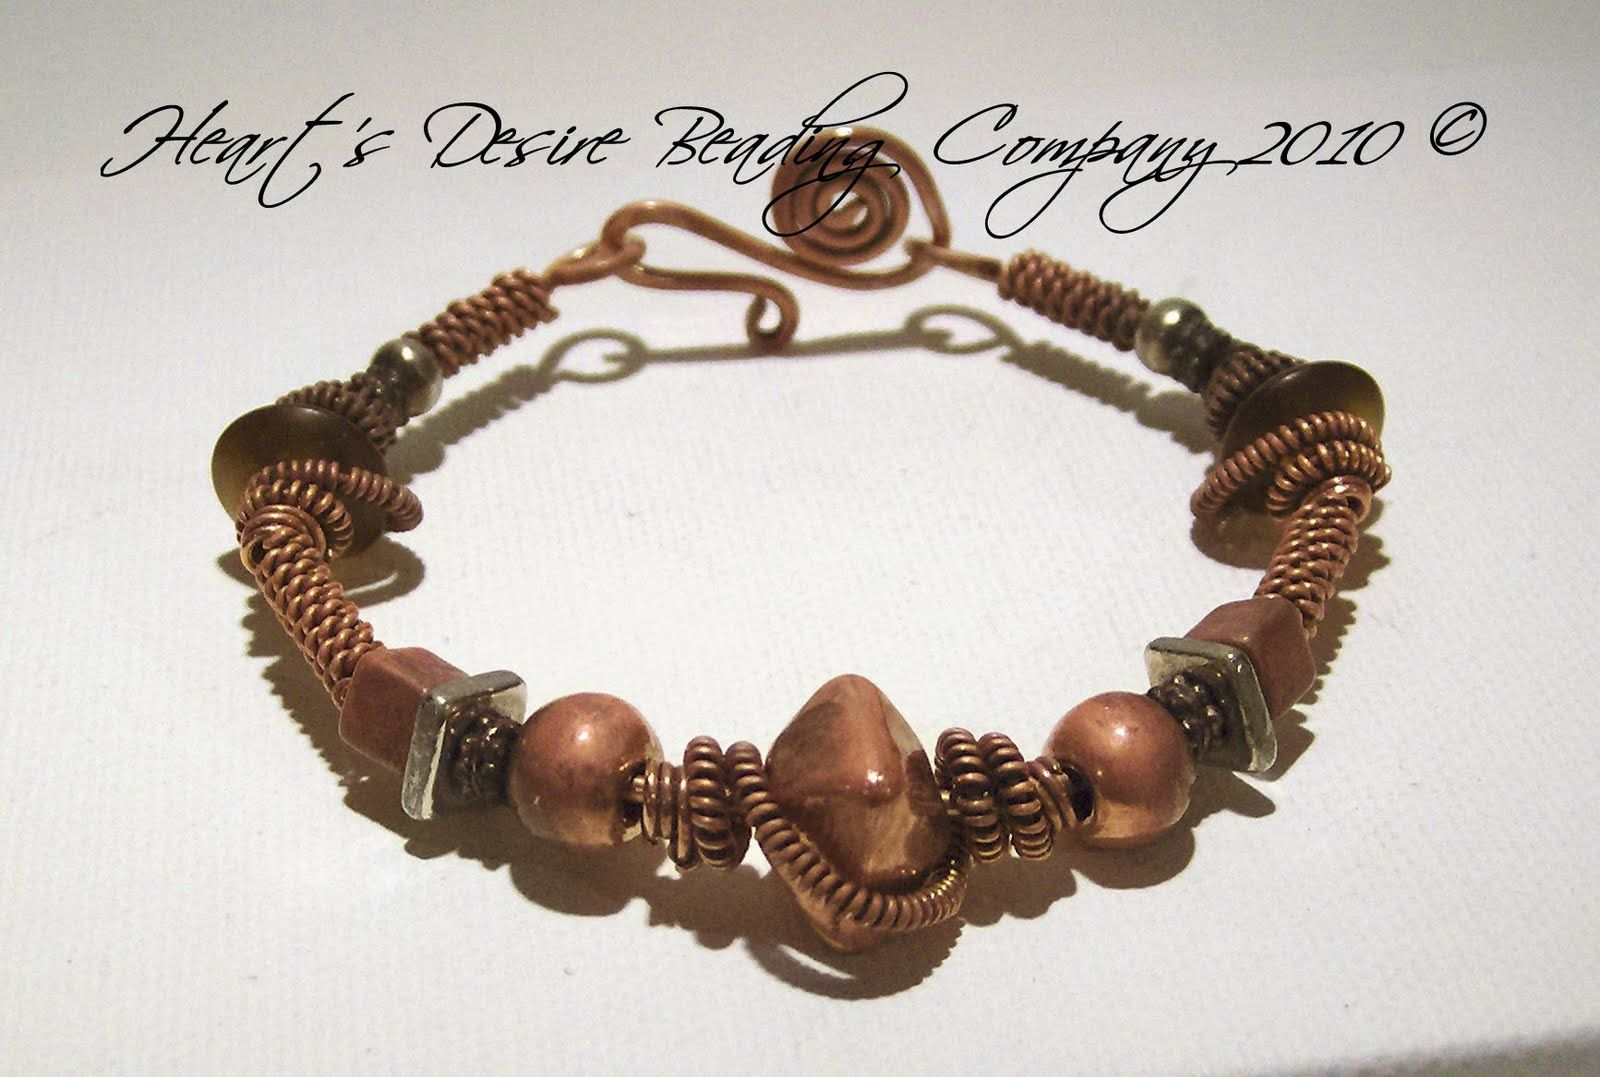 How To Clean And Care For Copper Jewelry | Cleaning ...